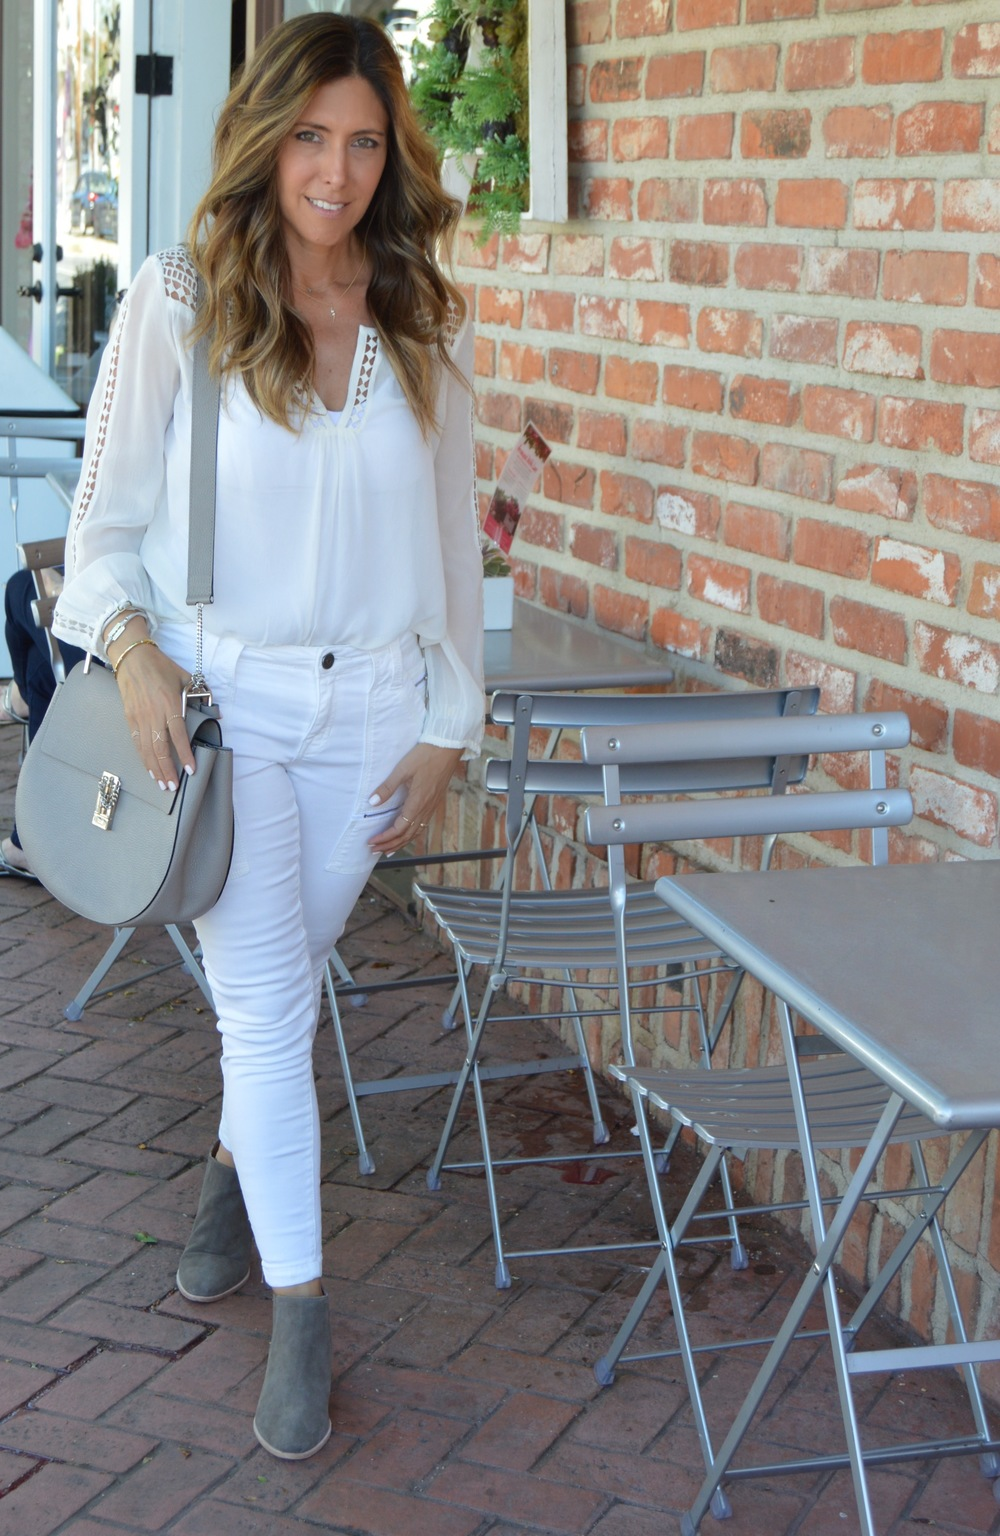 Melissa Meyers in Joie Leblanc blouse, skinny jean & boot with Cosabella Camisole & Chloe Drew Medium Bag